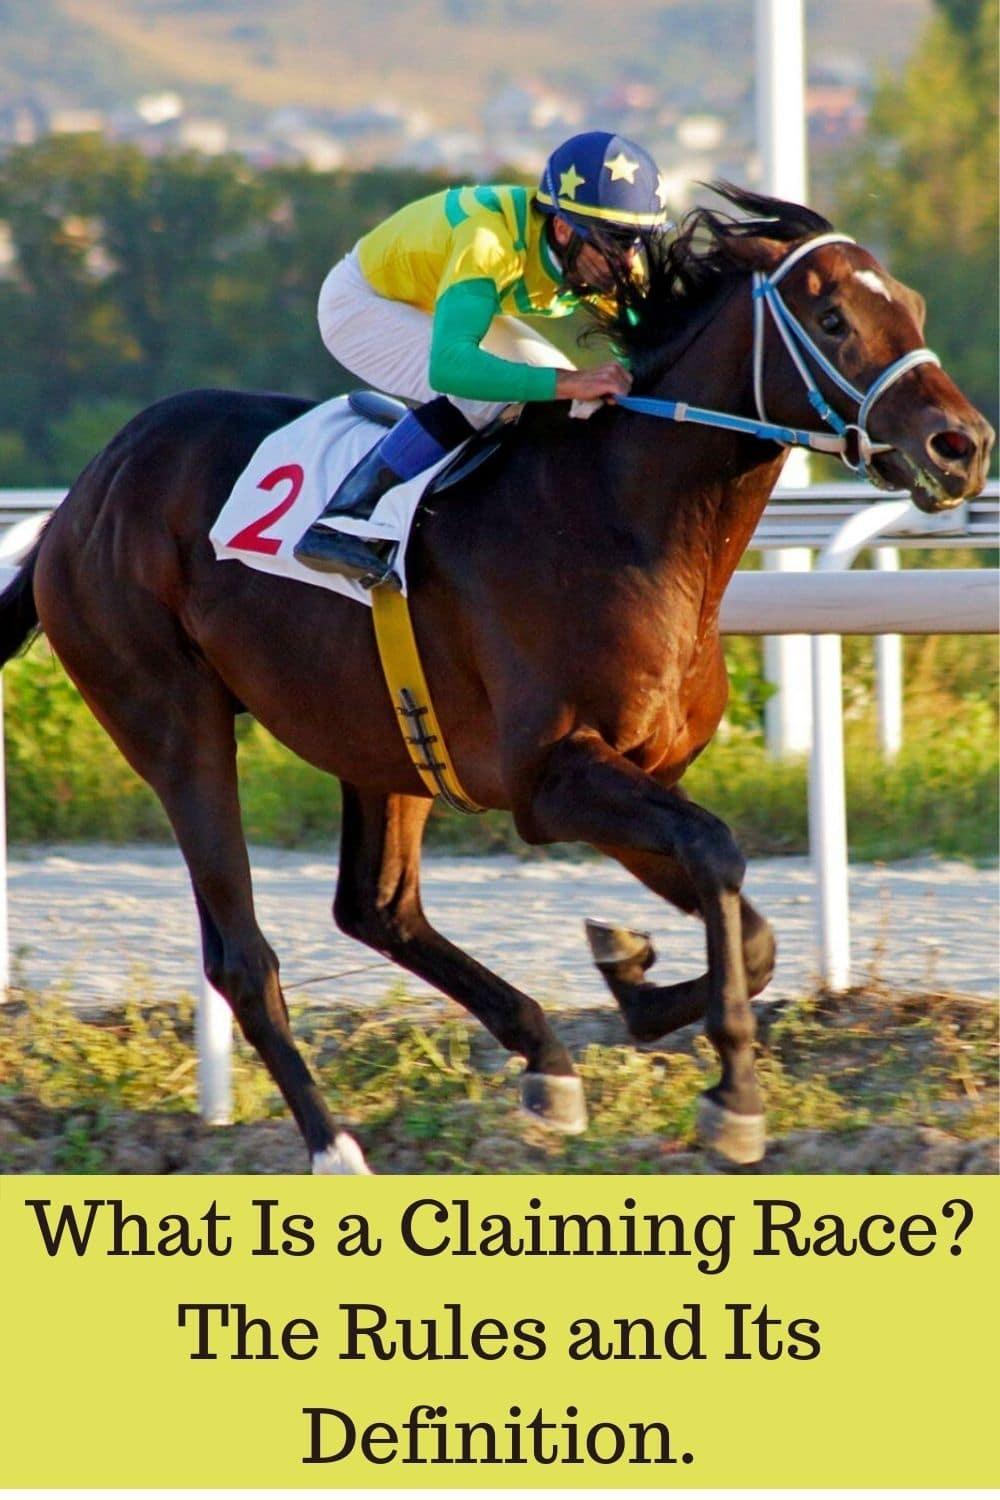 What is a Claiming Race